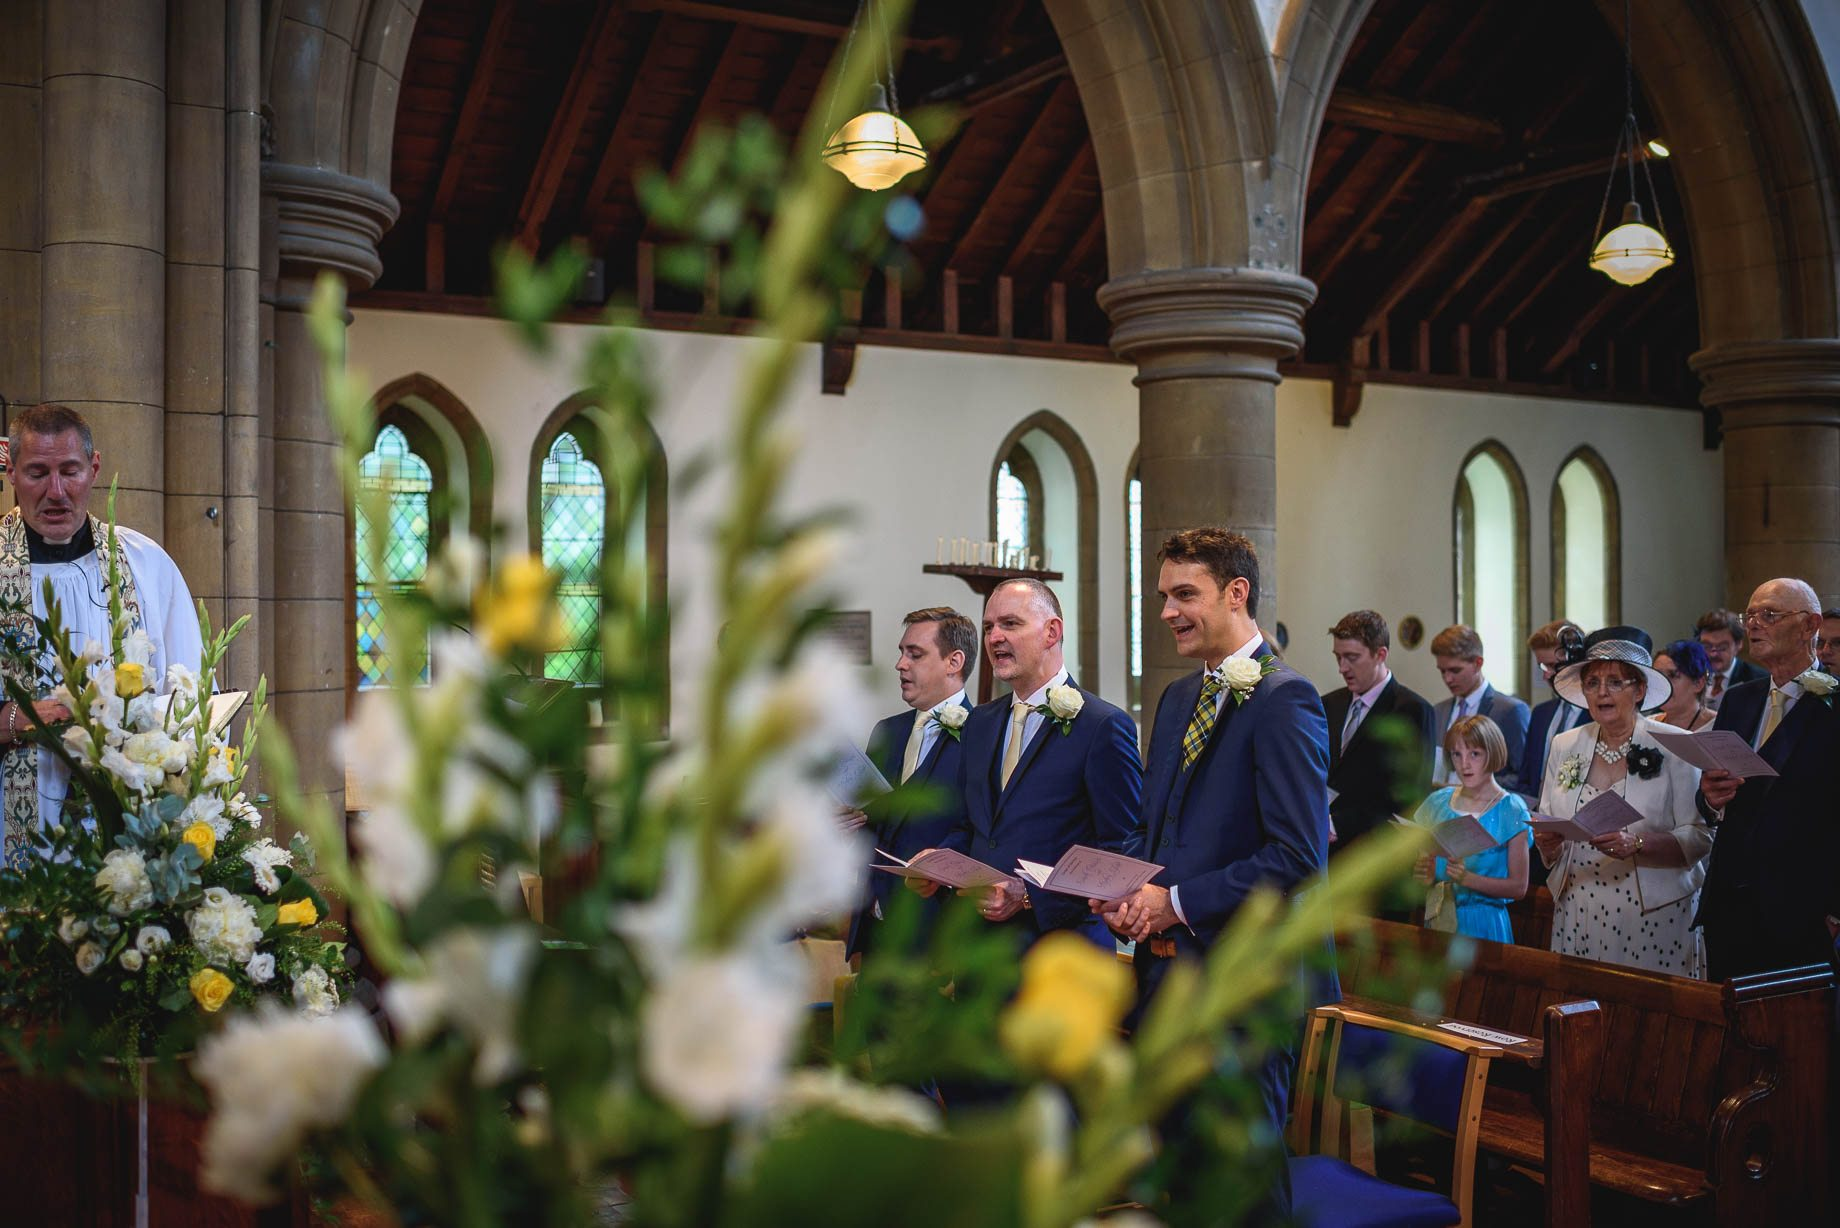 Hertfordshire wedding photography - Sarah and Stephen by Guy Collier Photography (59 of 161)